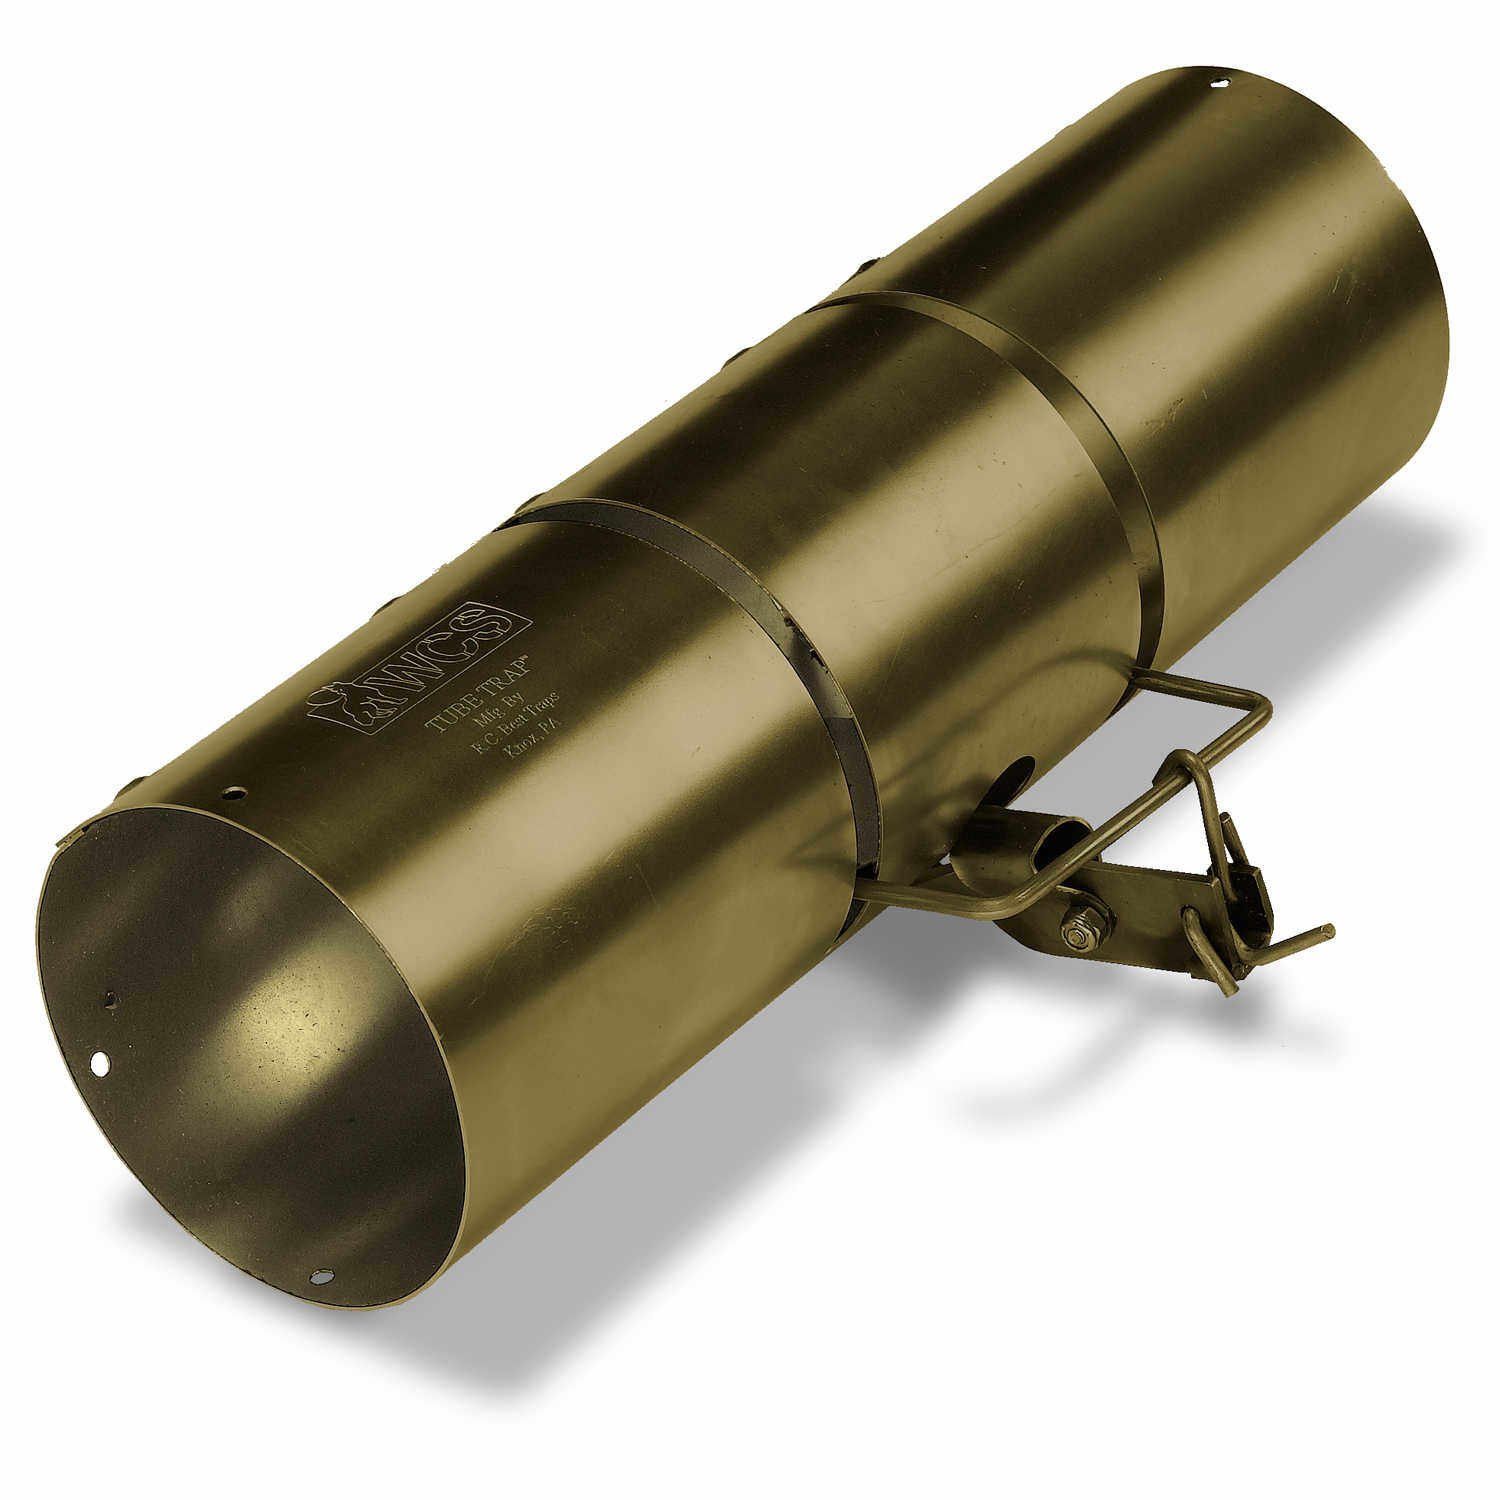 Forestry Suppliers Tube Trap Squirrel Trap (Rust-Resistant)